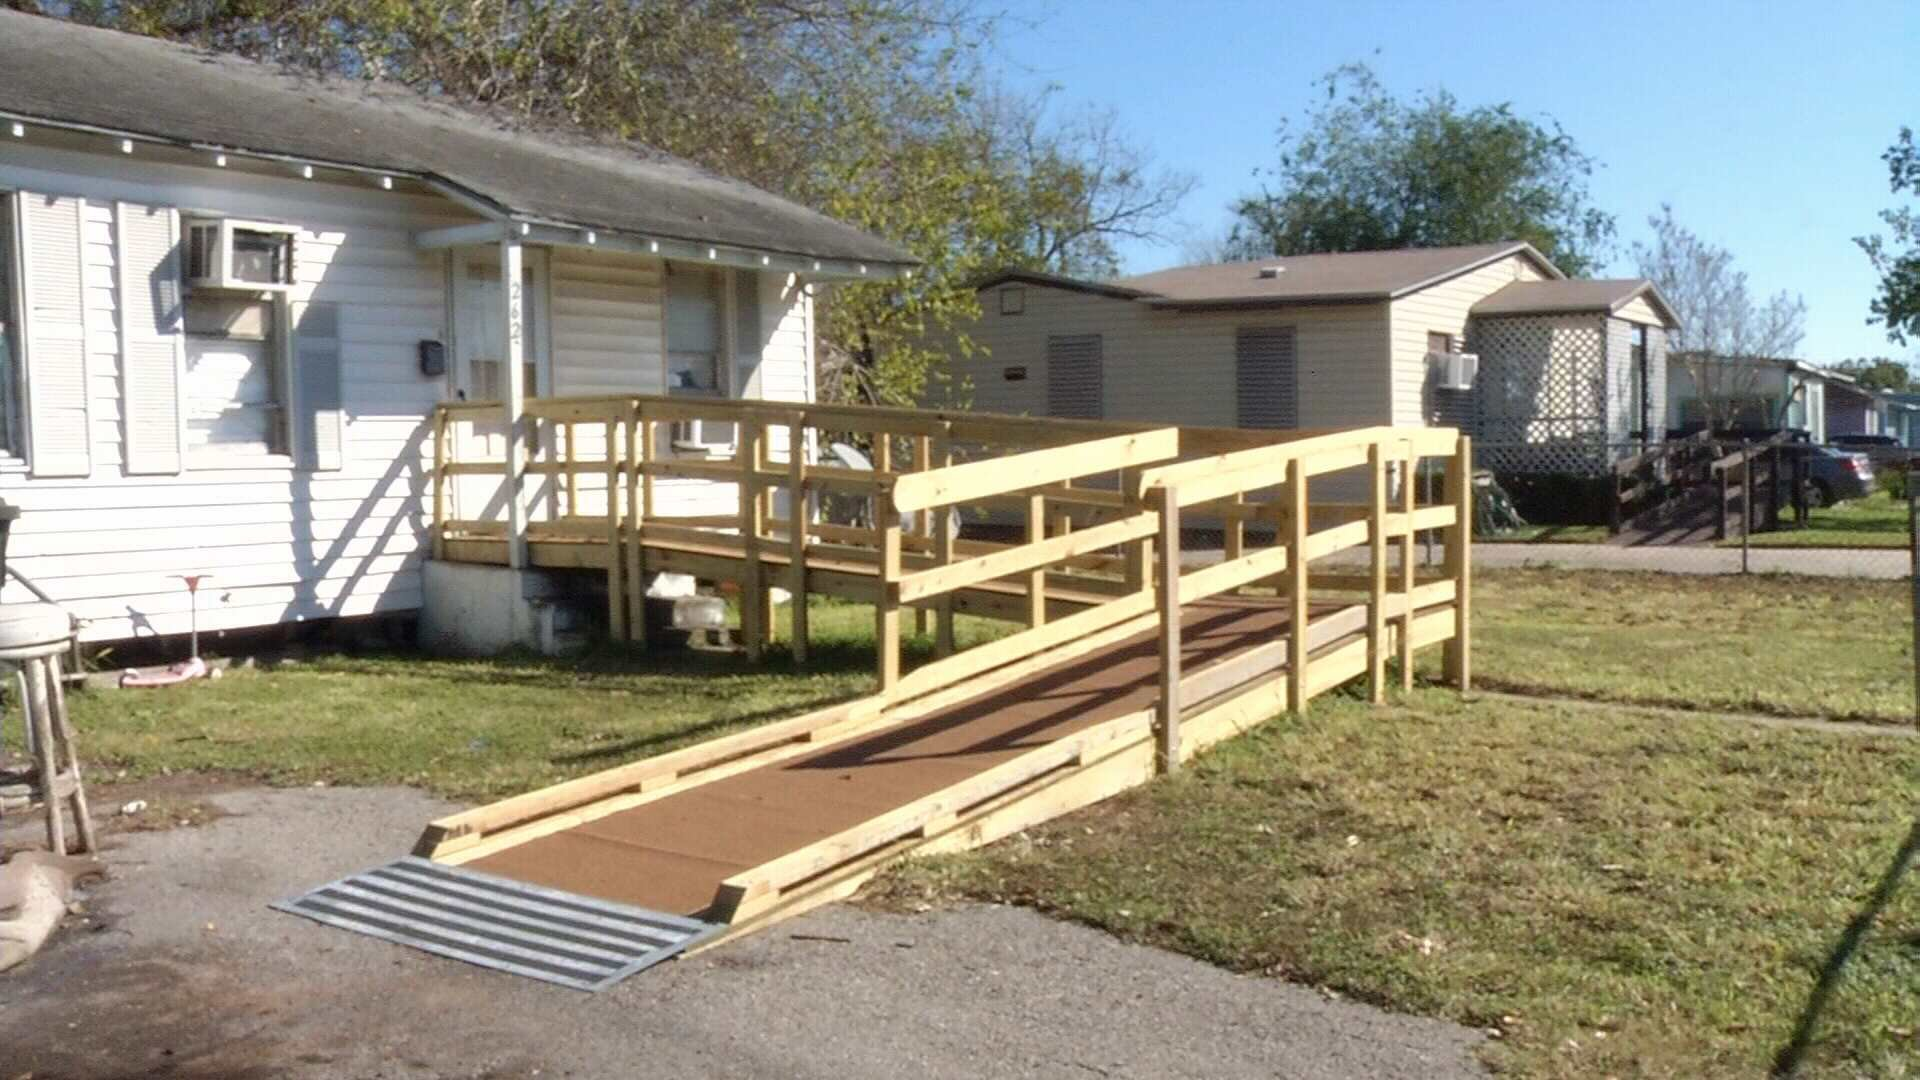 St Mark s Episcopal Church builds wheelchair ramps for those in